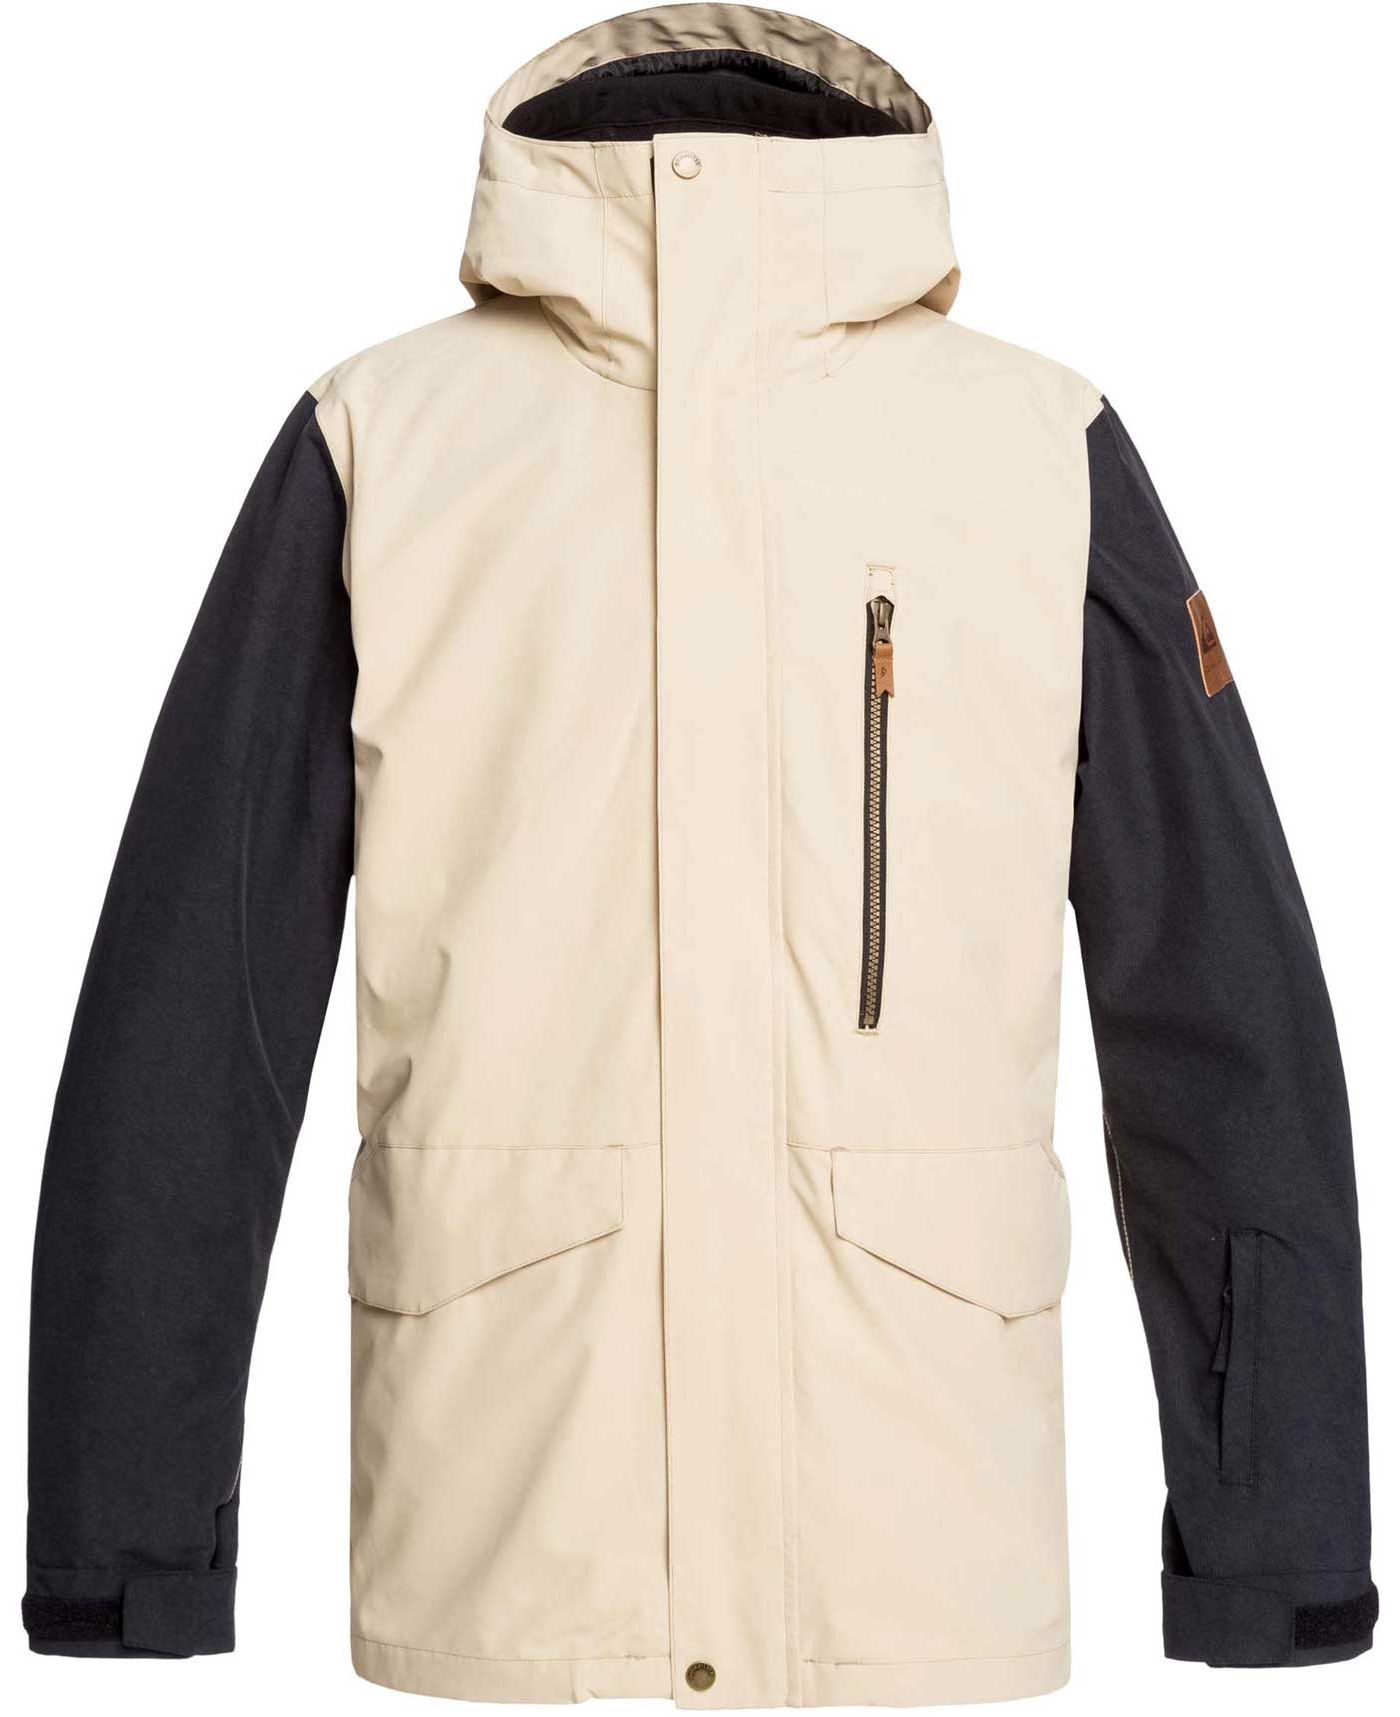 Quiksilver Men's Mission 3-in-1 Snow Jacket